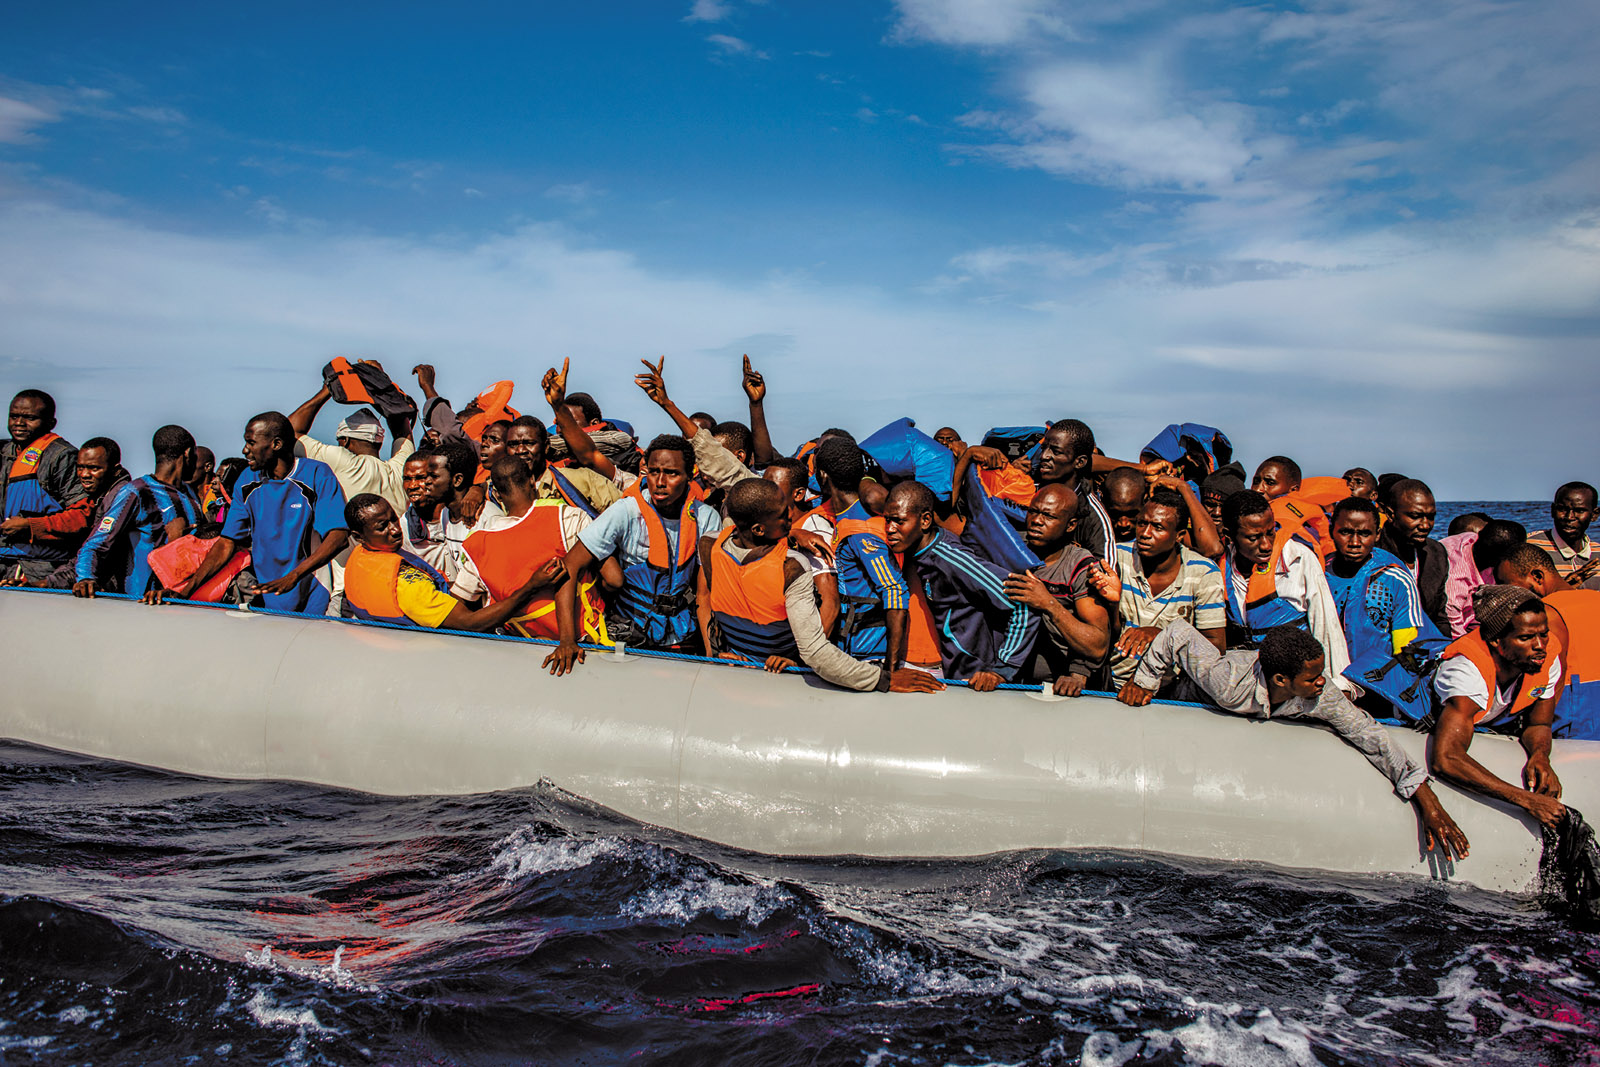 Refugees rescued by the Italian navy between Italy and Libya, October 2014